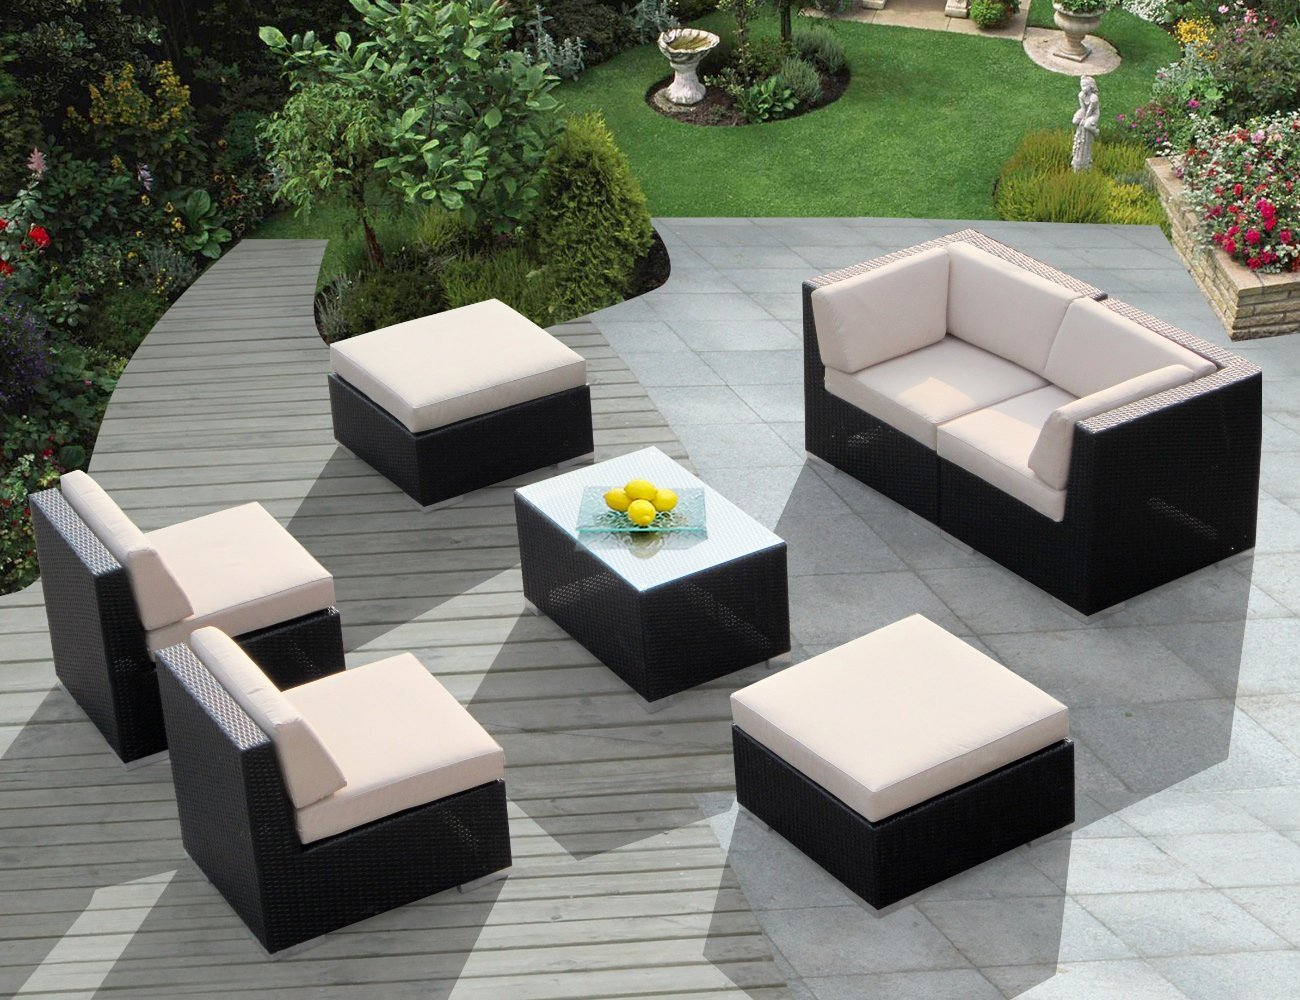 Genuine Ohana Outdoor Wicker Furnitureweatherproof Patio Furniture Set 14